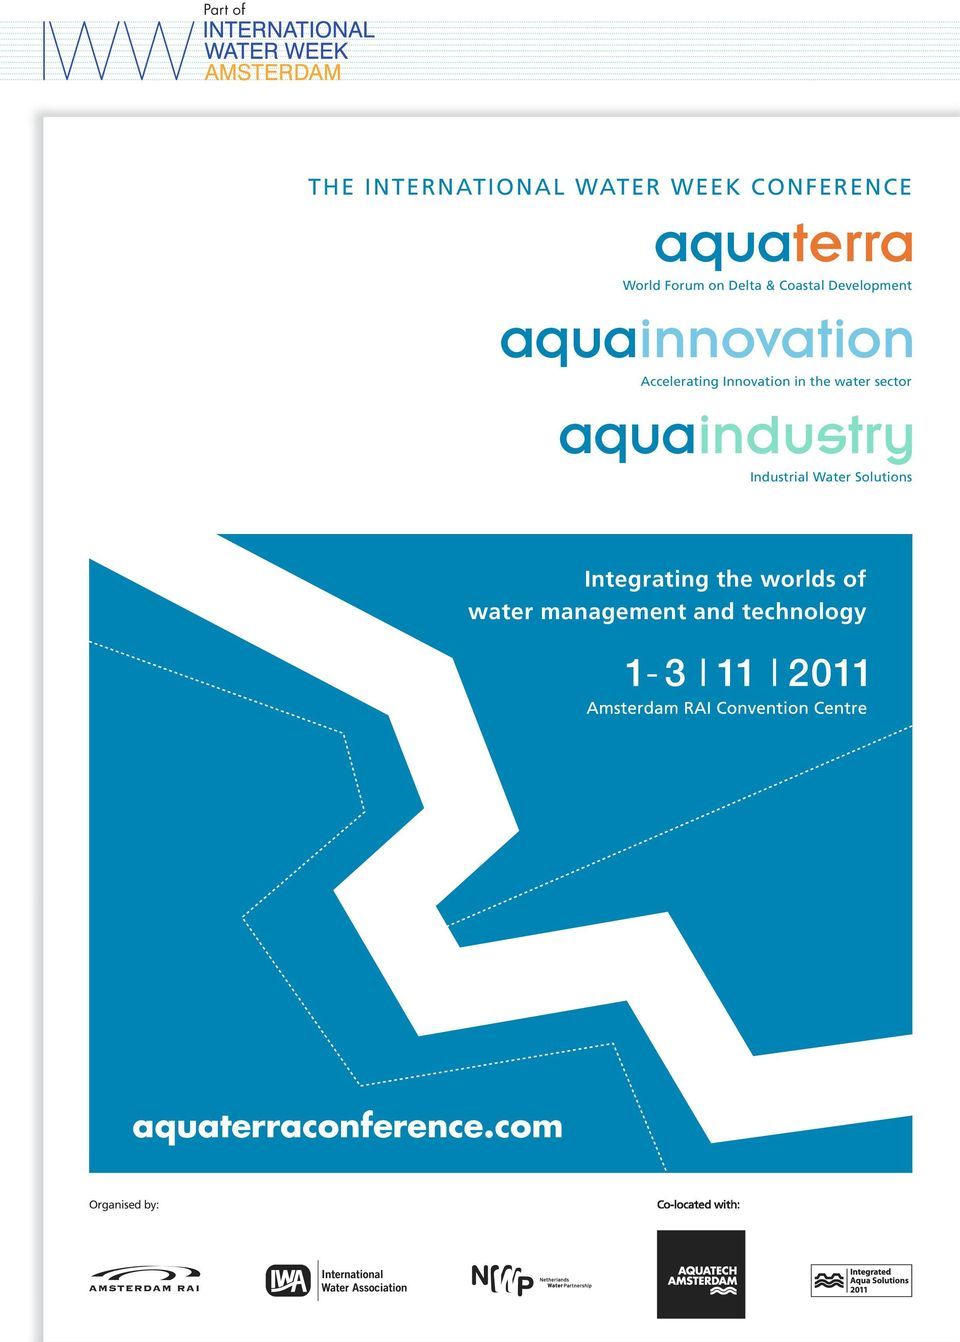 water sector aquaindustry Industrial Water Solutions Integrating the